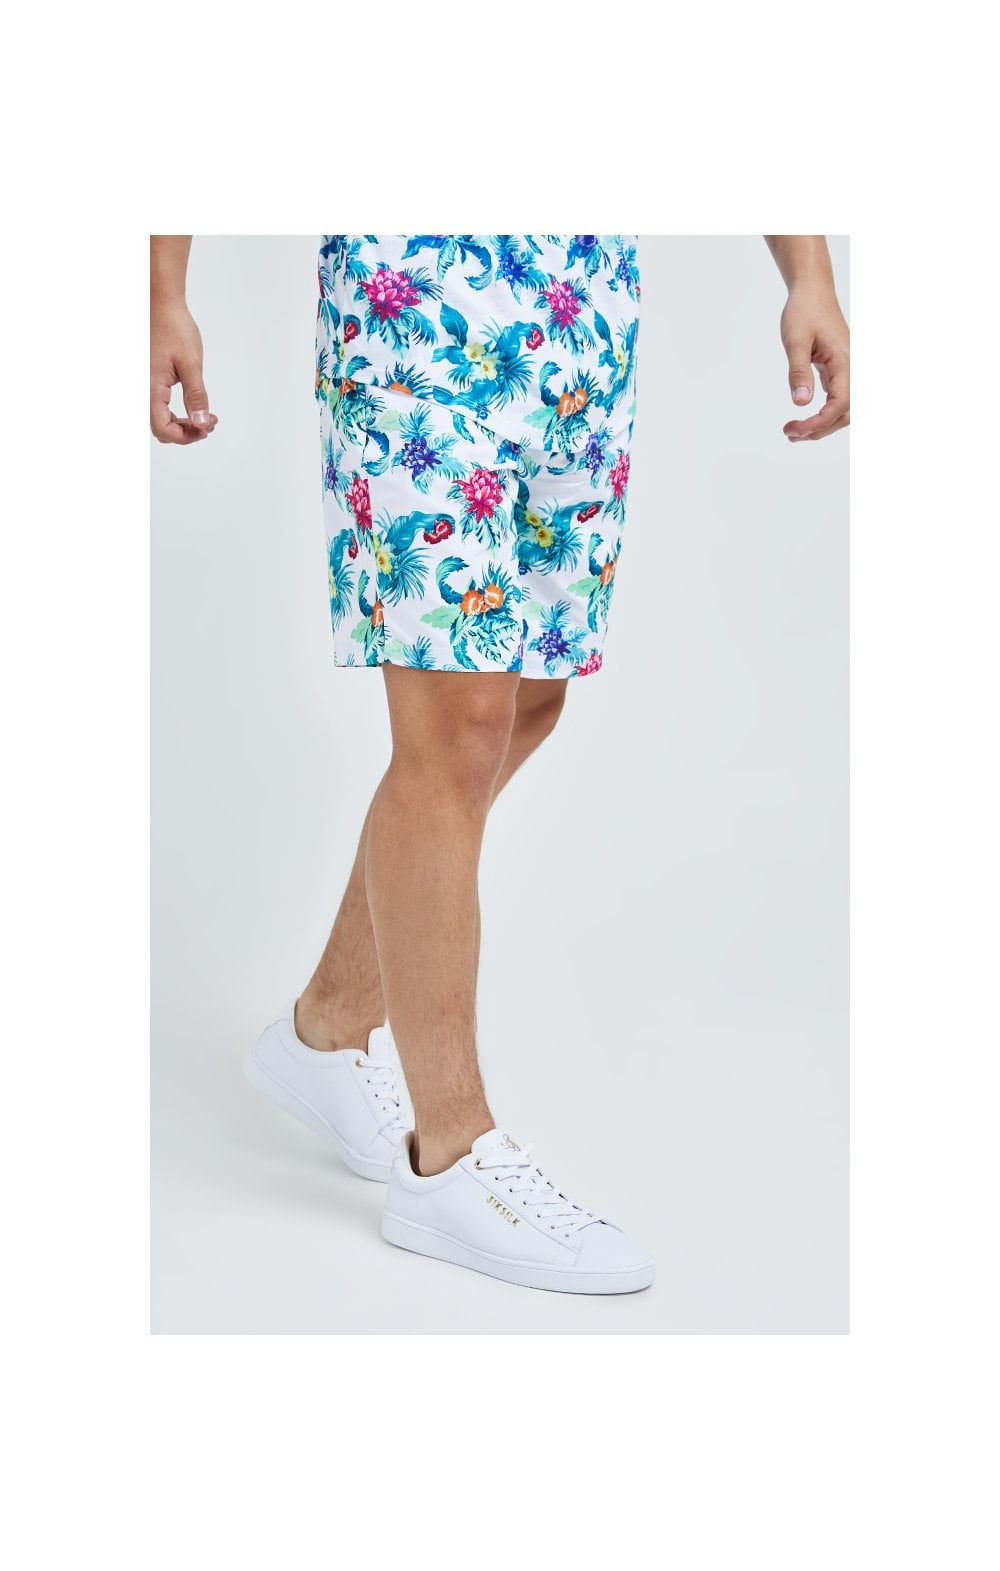 Illusive London Swim Shorts - White & Floral (2)